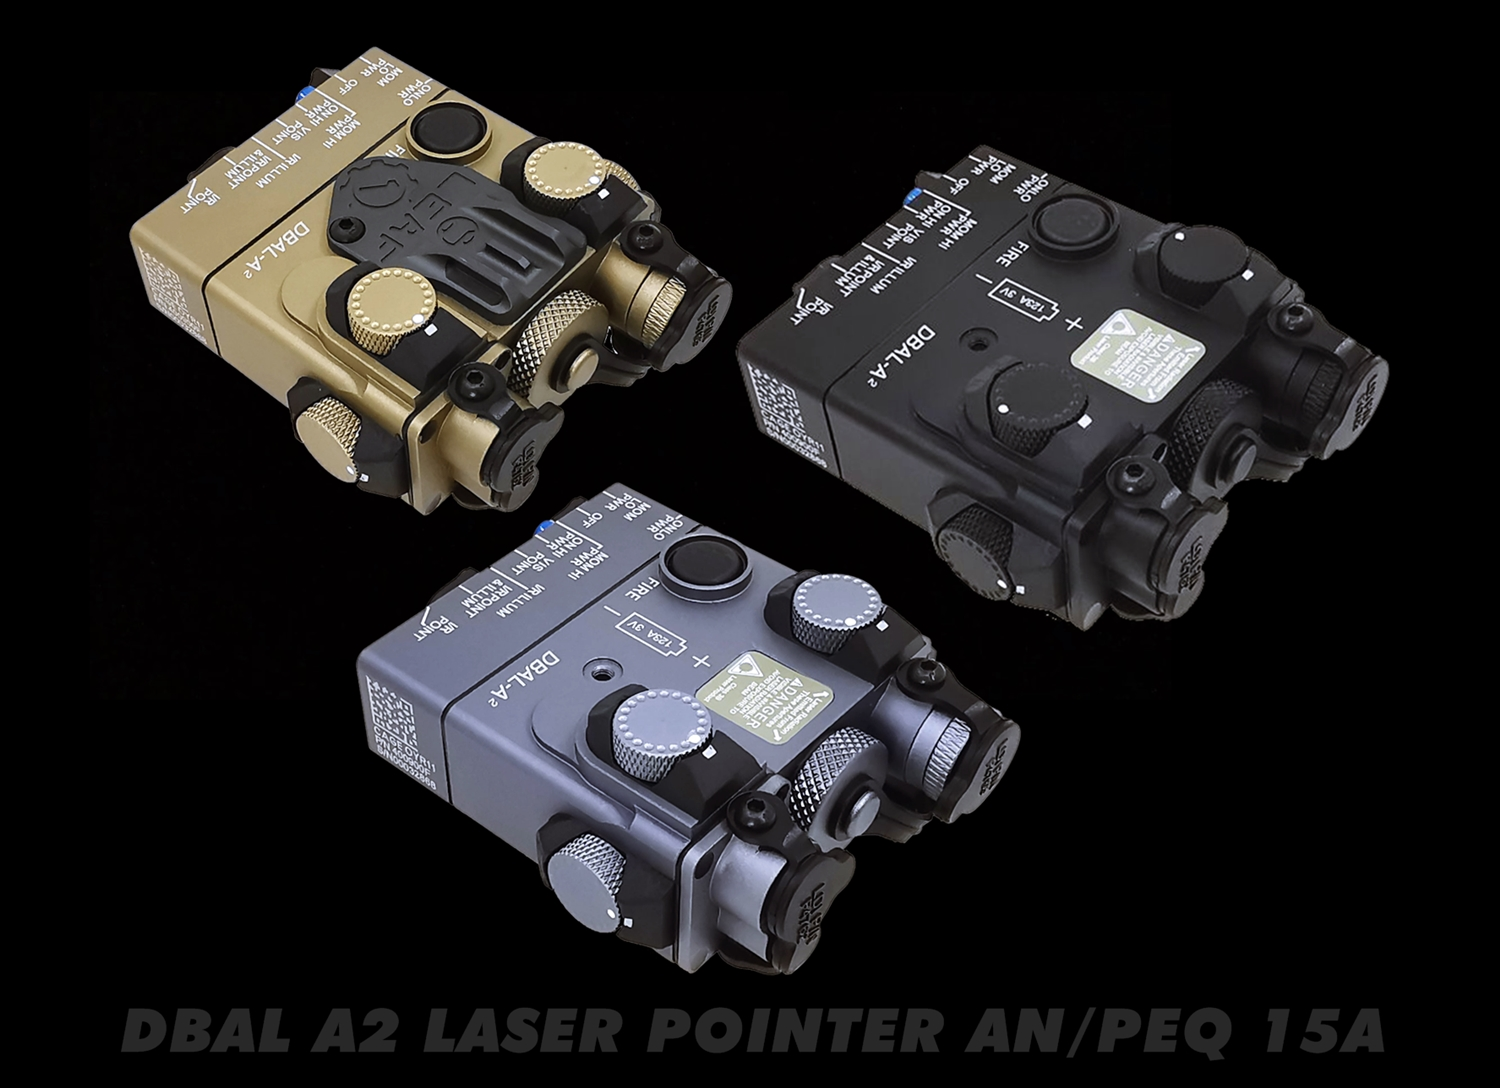 0 DBAL A2 LASER POINTER AN PEQ 15A IR LASER &IR ILLUMINATOR - LED WRITE!!SOTAC-JGQ-3SOTAC-GEAR!!販売 予約 情報!!